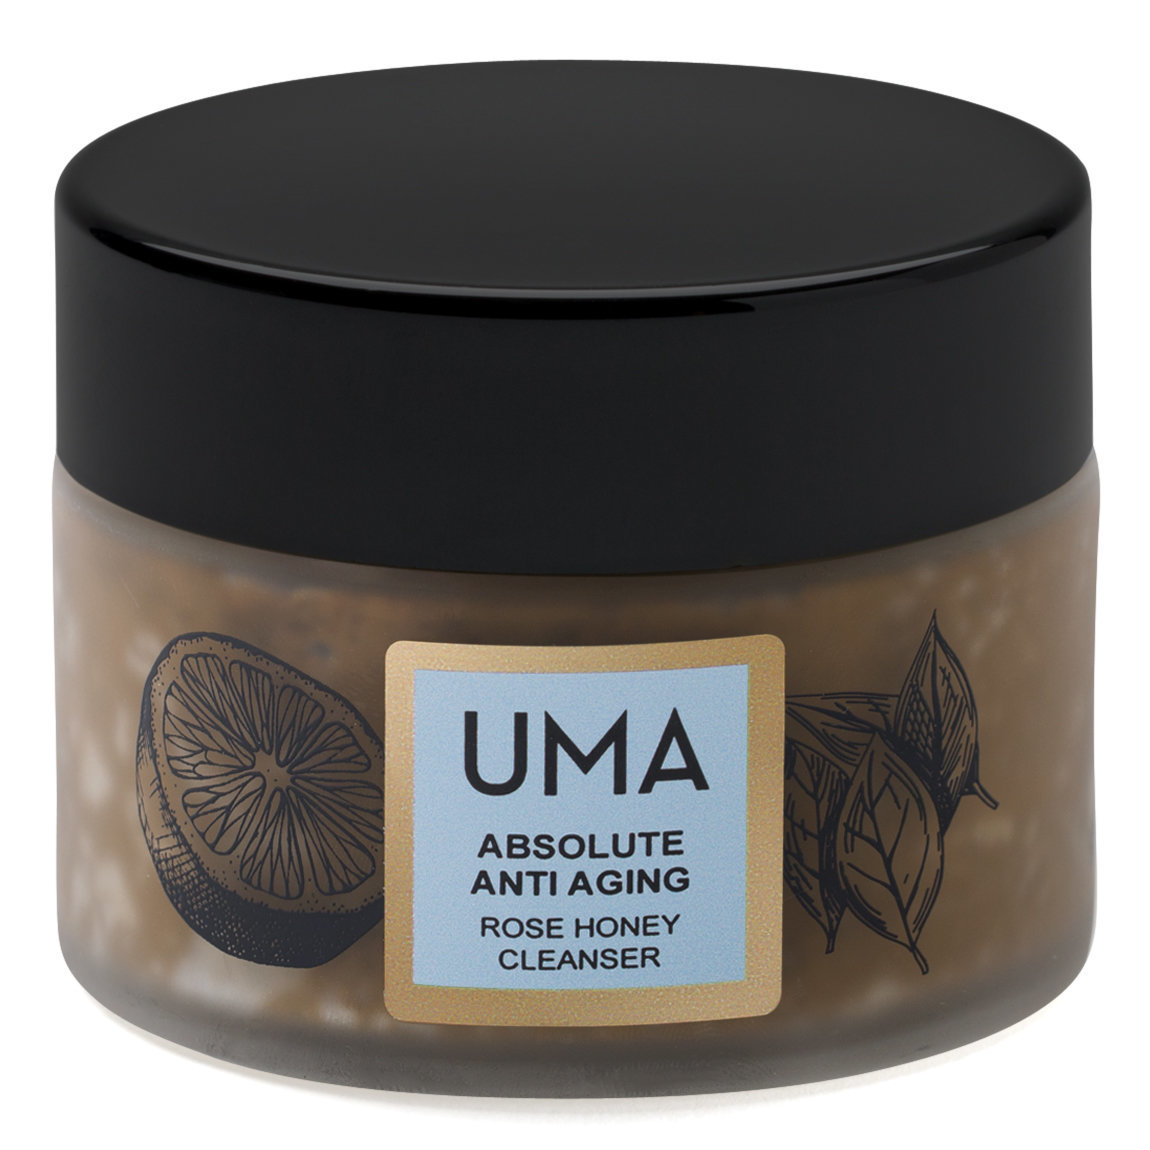 Uma Absolute Anti Aging Rose Honey Cleanser product smear.